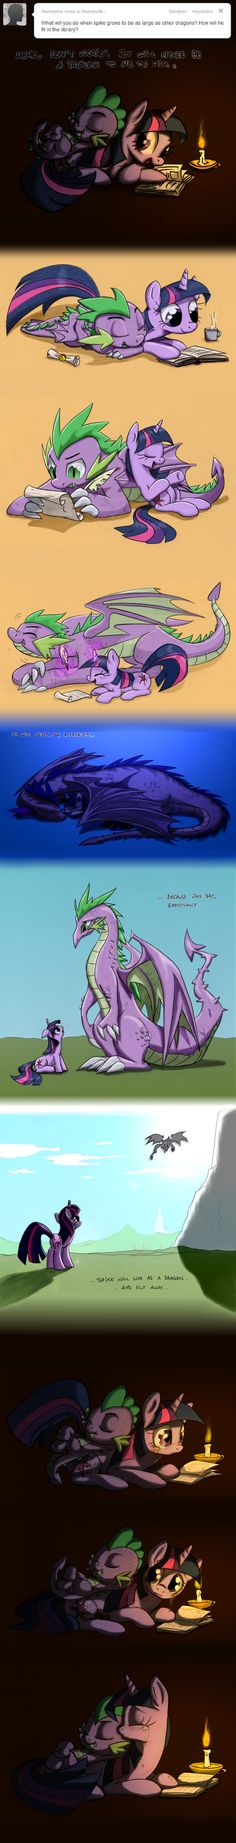 Headcanon: Twilight may worry about it, but it'll never happen. Spike is too loyal to leave her.